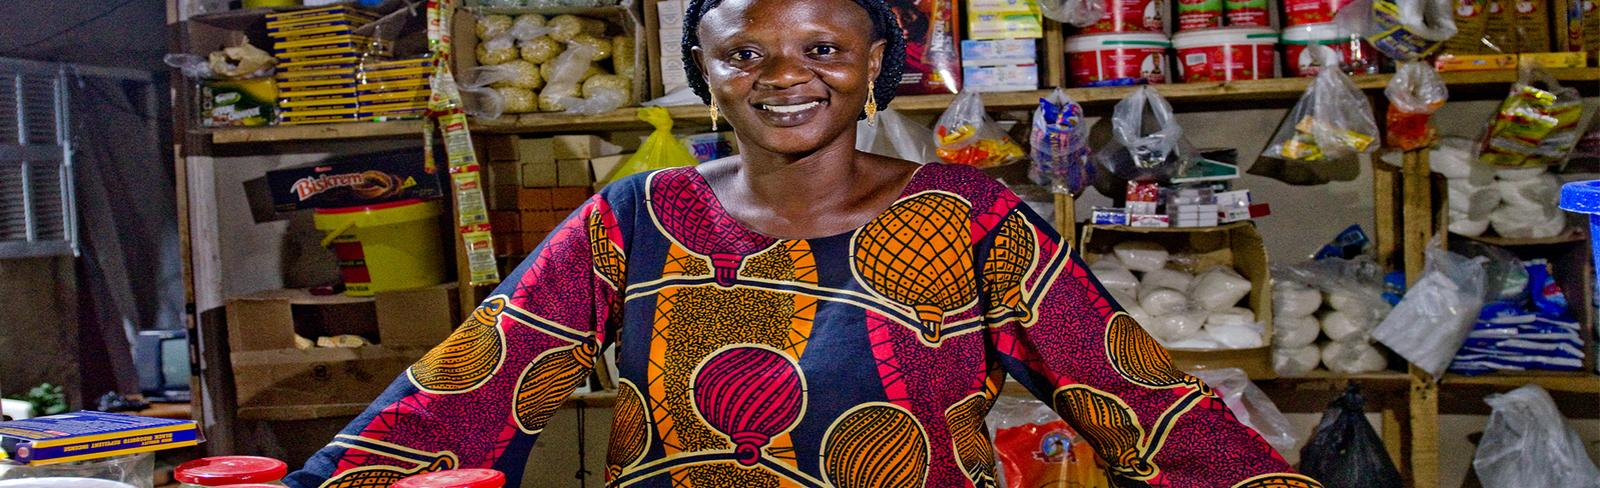 Woman, Africa, Store